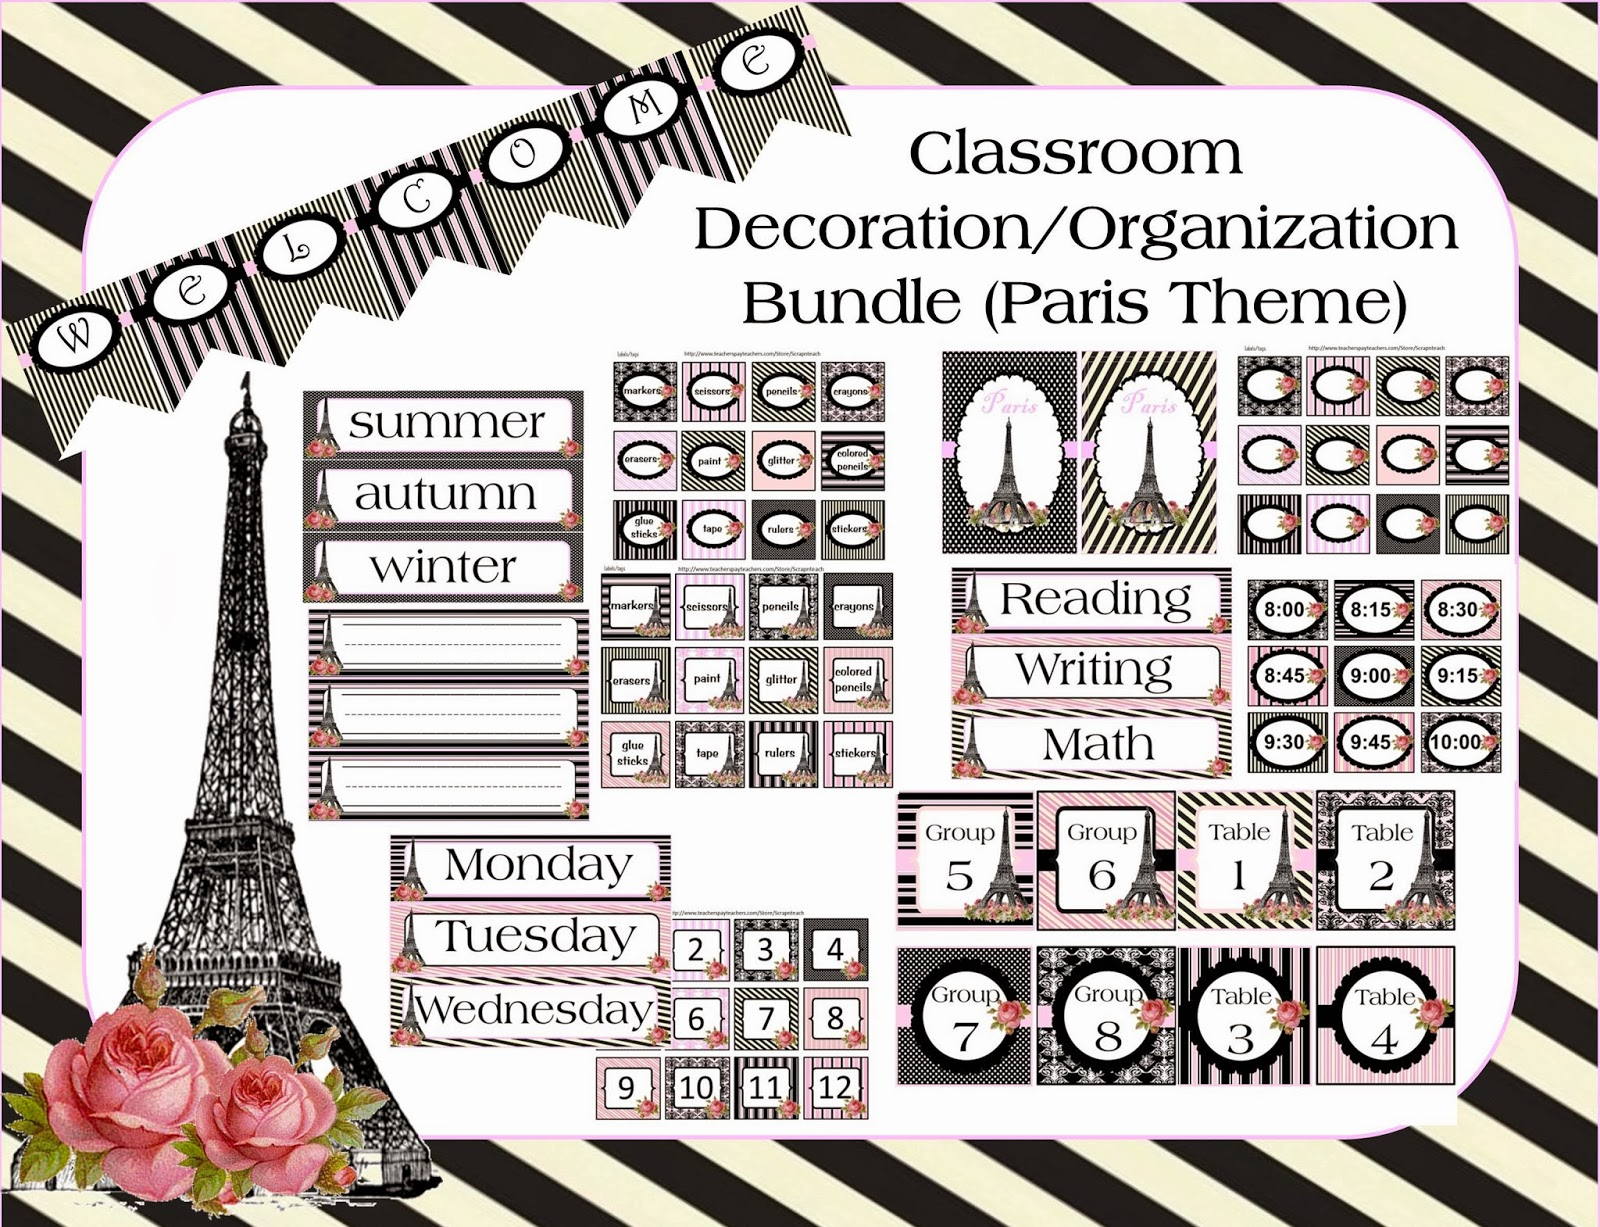 http://www.teacherspayteachers.com/Product/Classroom-Decoration-Bundle-Paris-Theme-570089